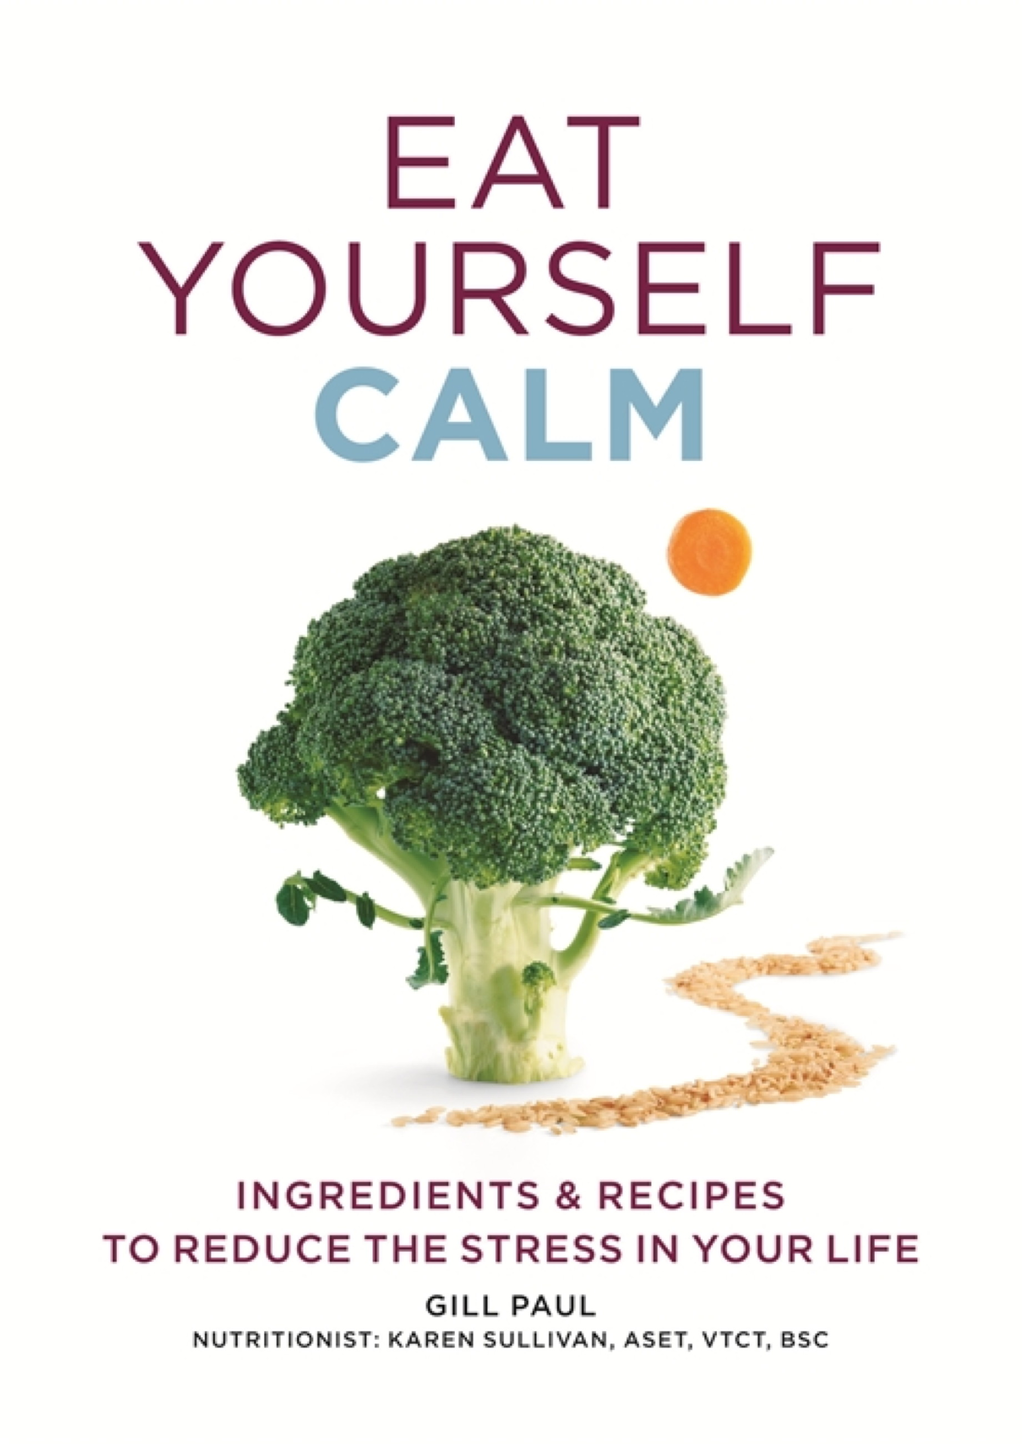 Eat Yourself Calm Ingredients & Recipes to Reduce the Stress in Your Life